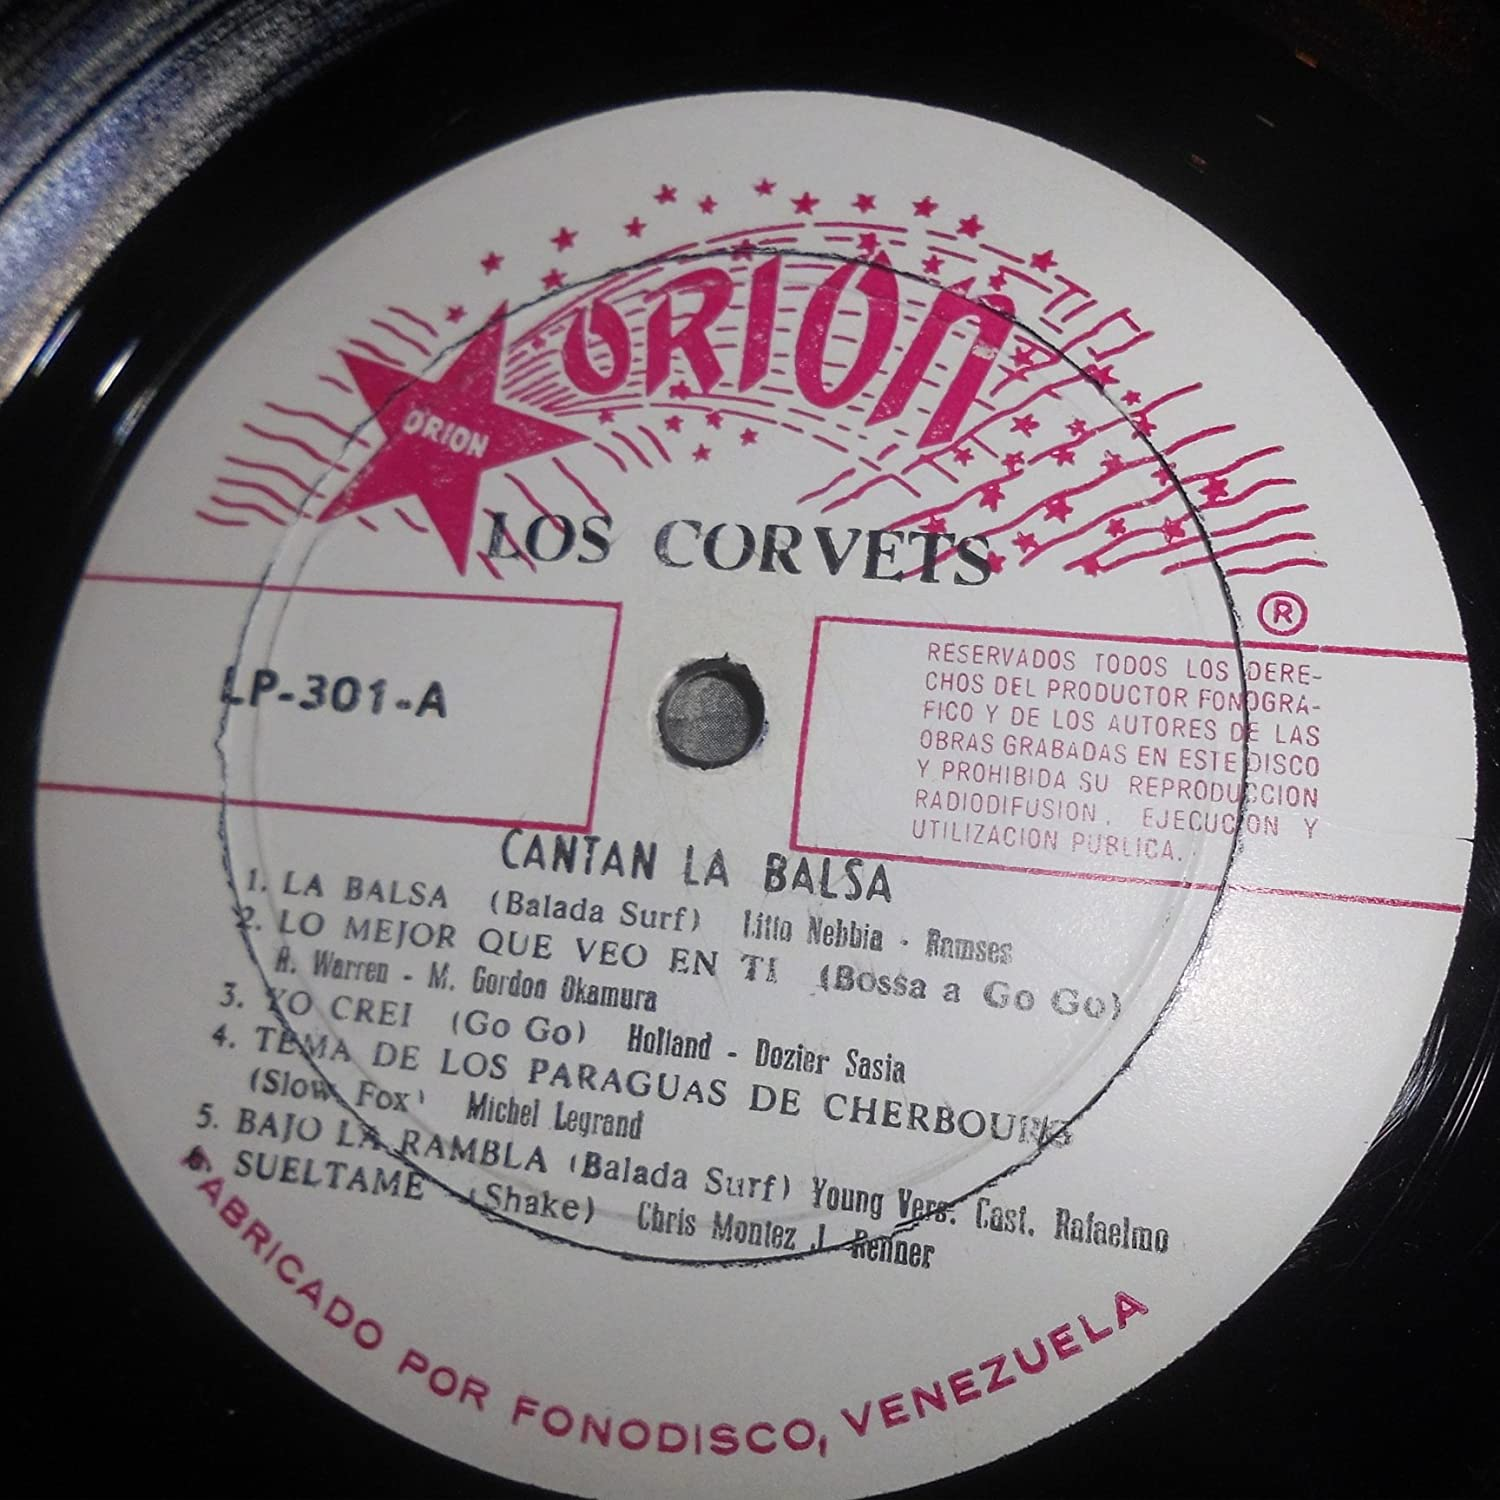 Litto Nebbia, Ramses, H. Warren, M. Gordon Okamura, Holland, Dozier Sasia, Michel Legrand, Young, Chris Montez, Moris Pipo, Los Corvets - Los Corvets ...